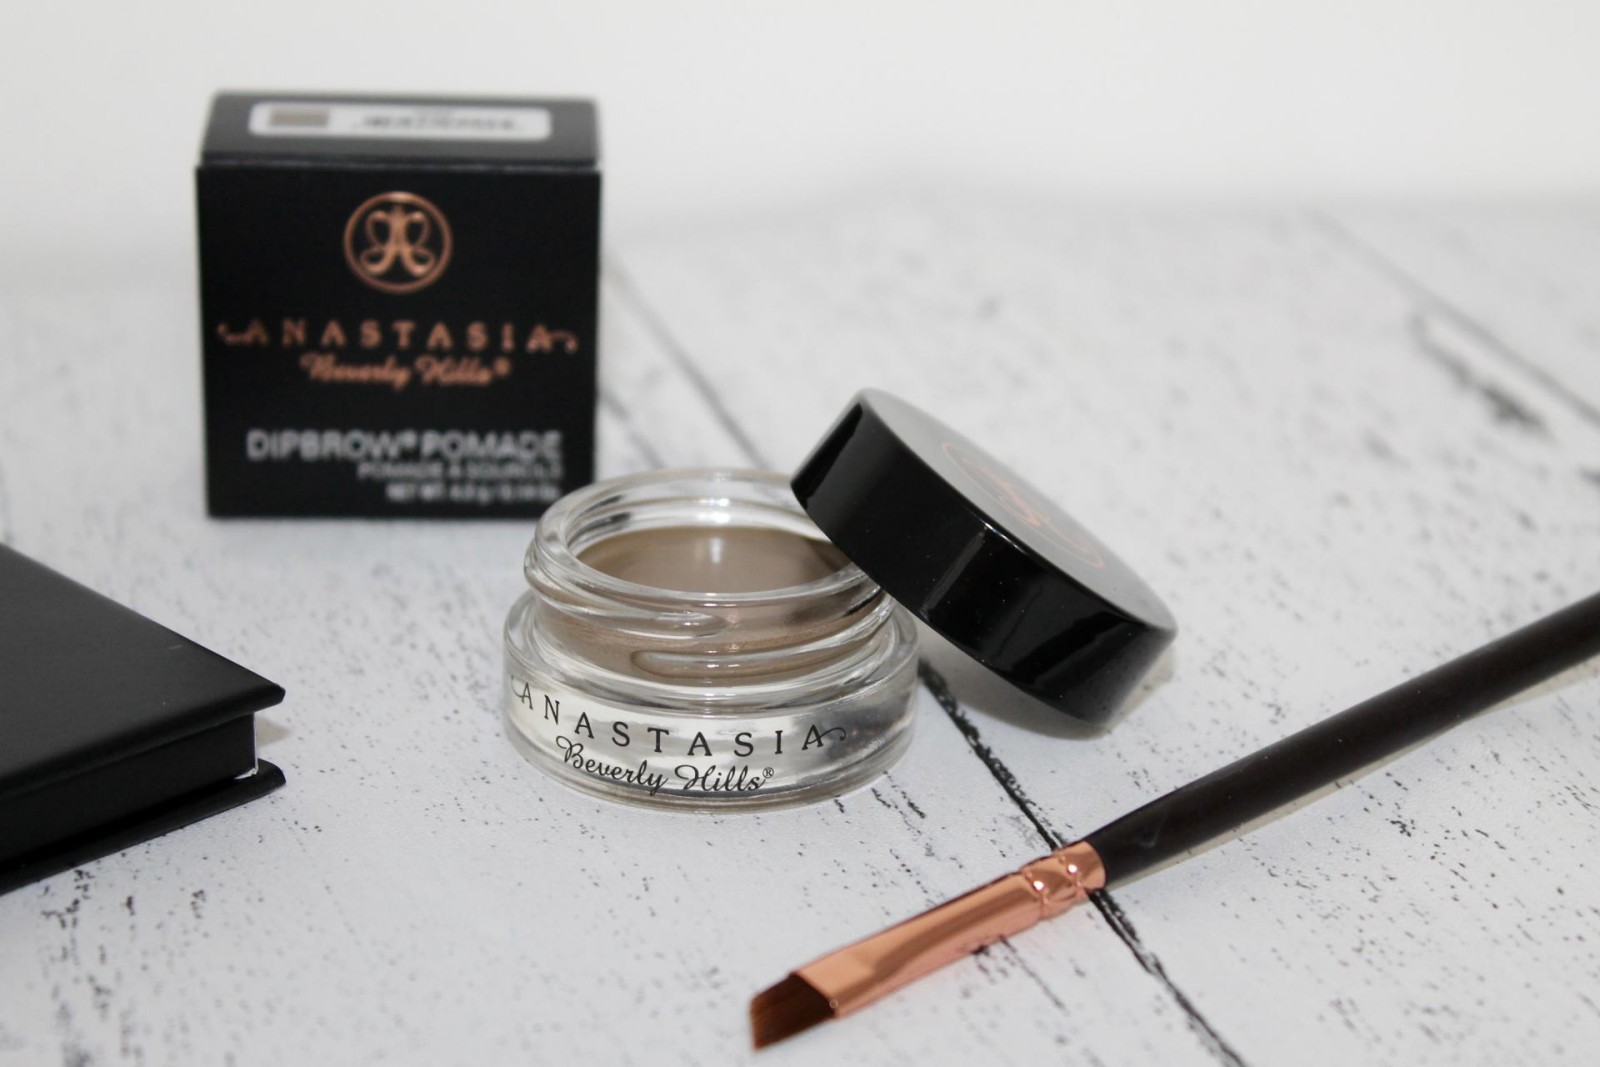 Anastasia Beverly Hills Review 12